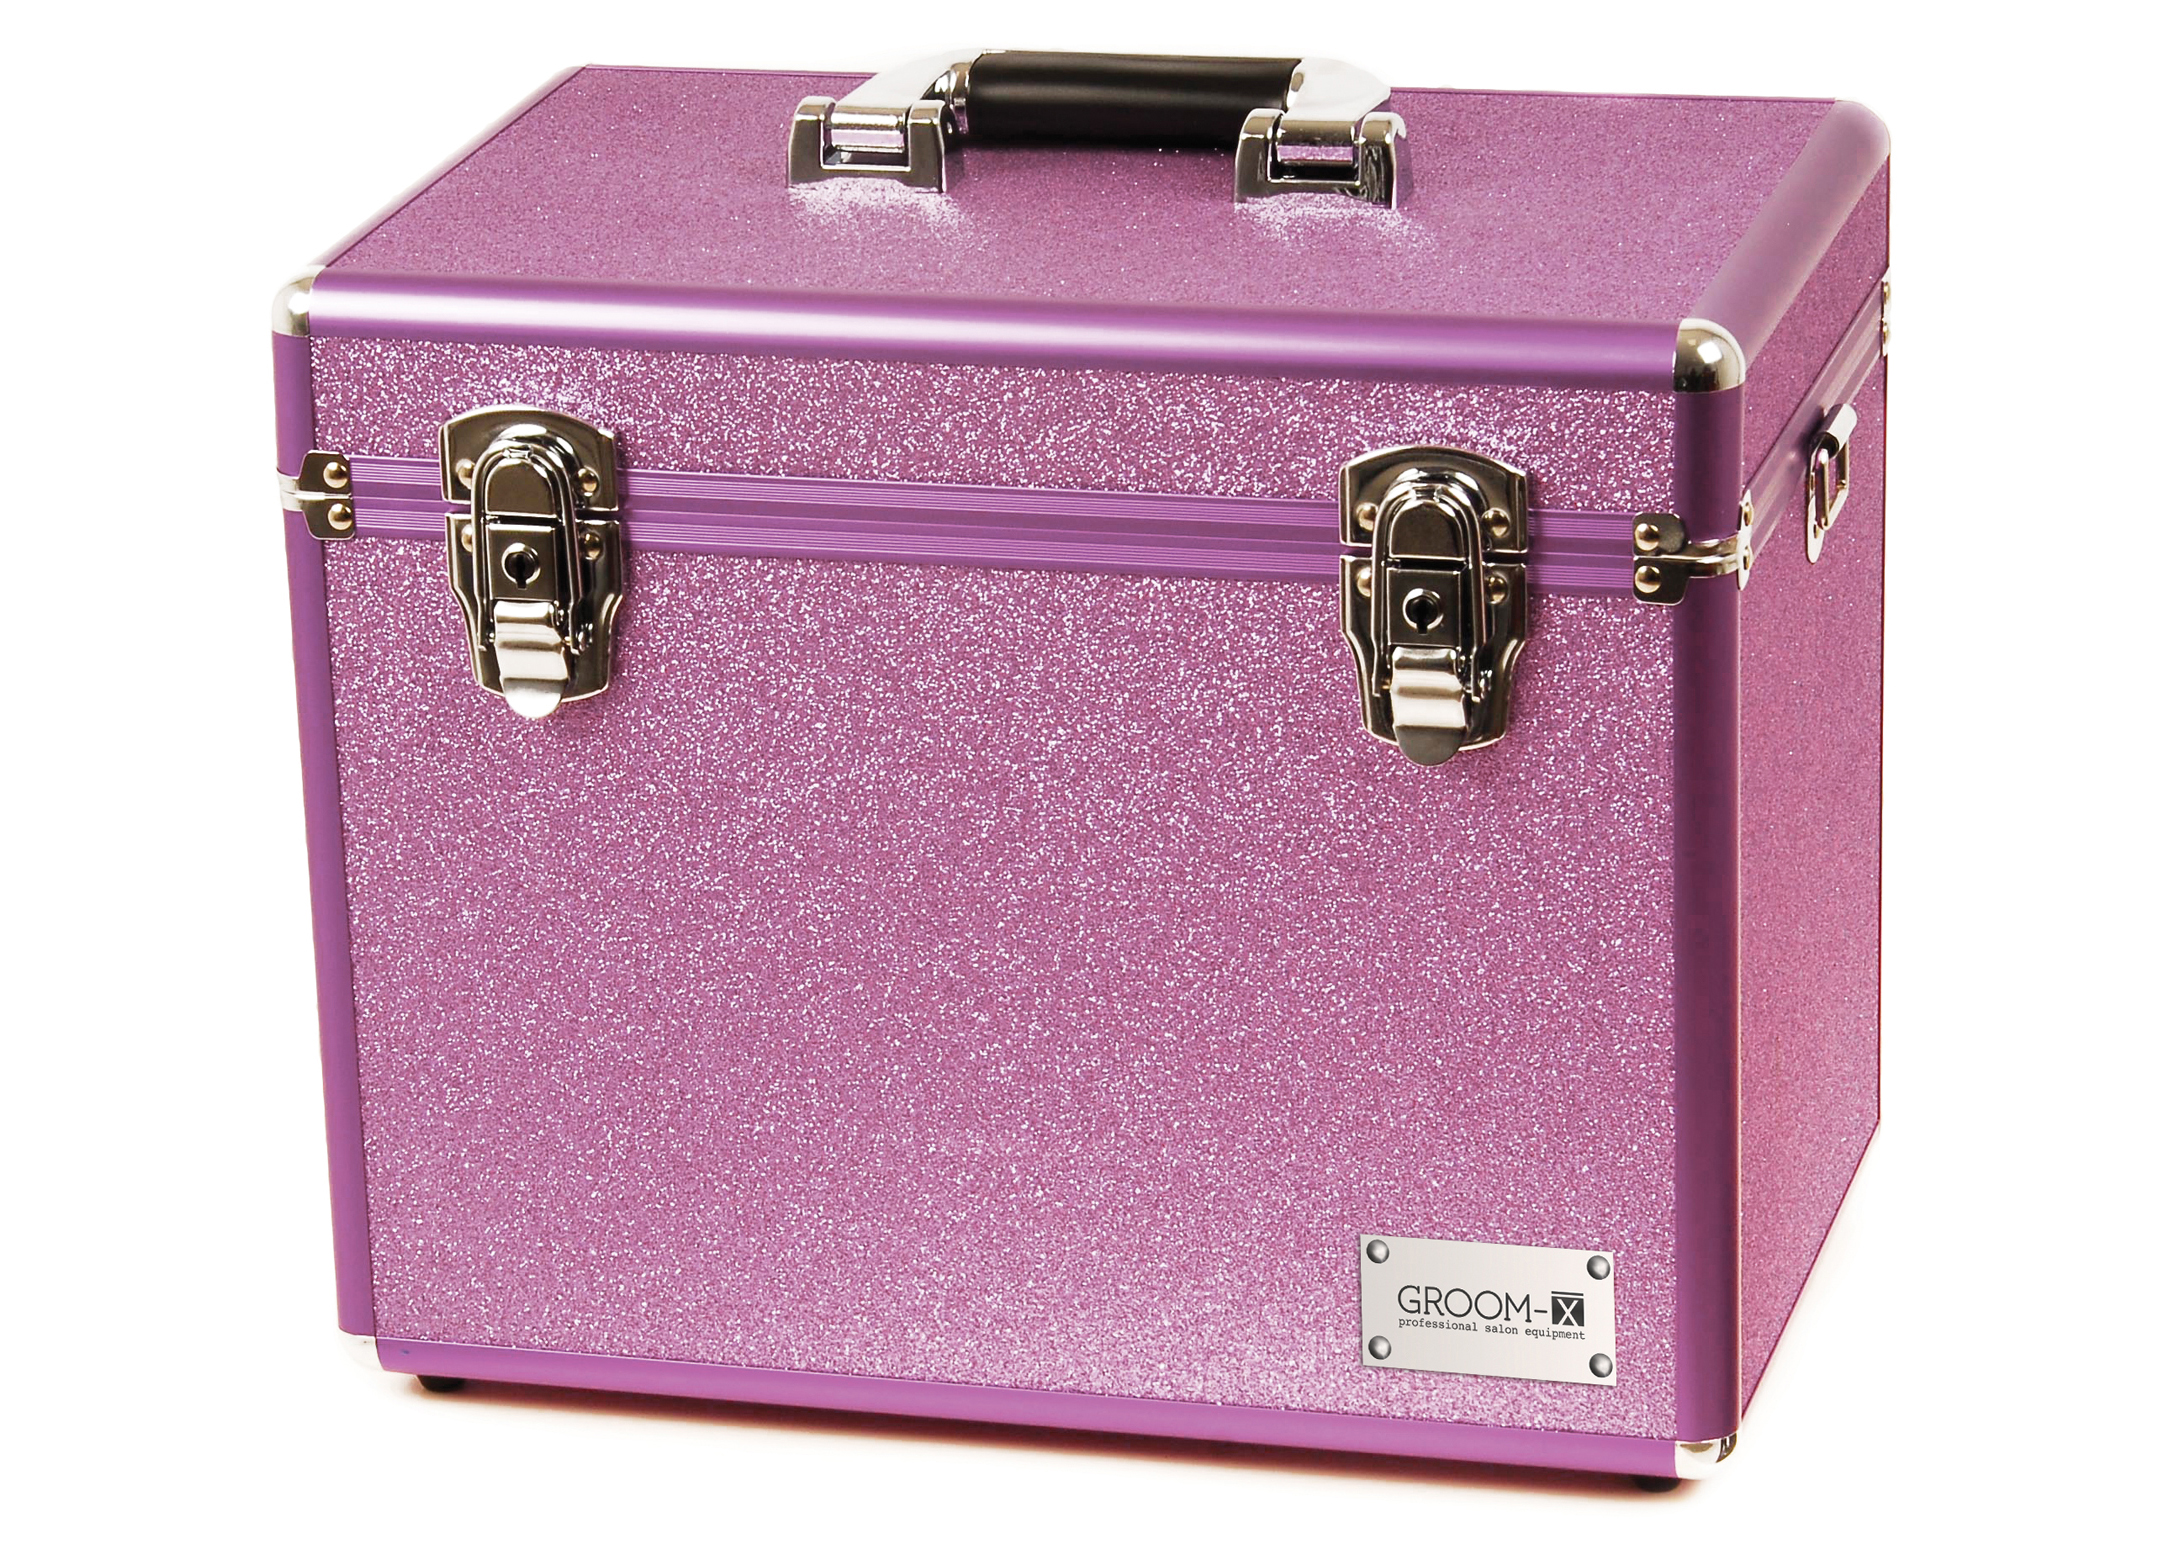 Groom-X Grooming Case Portable Glitter